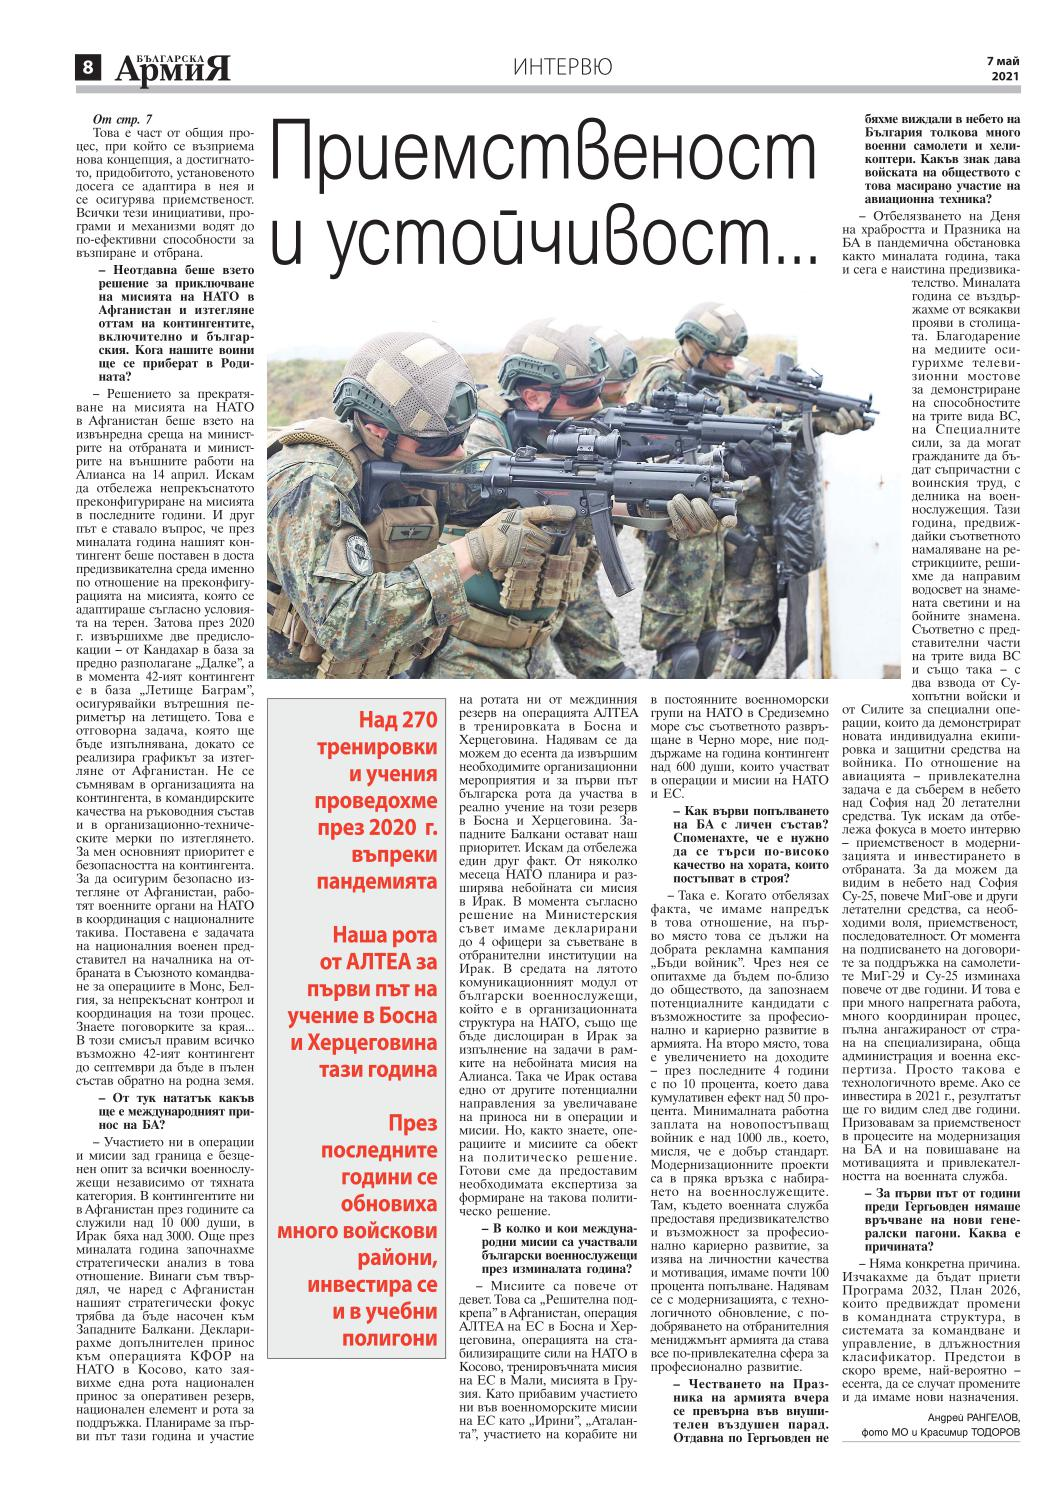 https://armymedia.bg/wp-content/uploads/2021/05/08.page1_.jpg